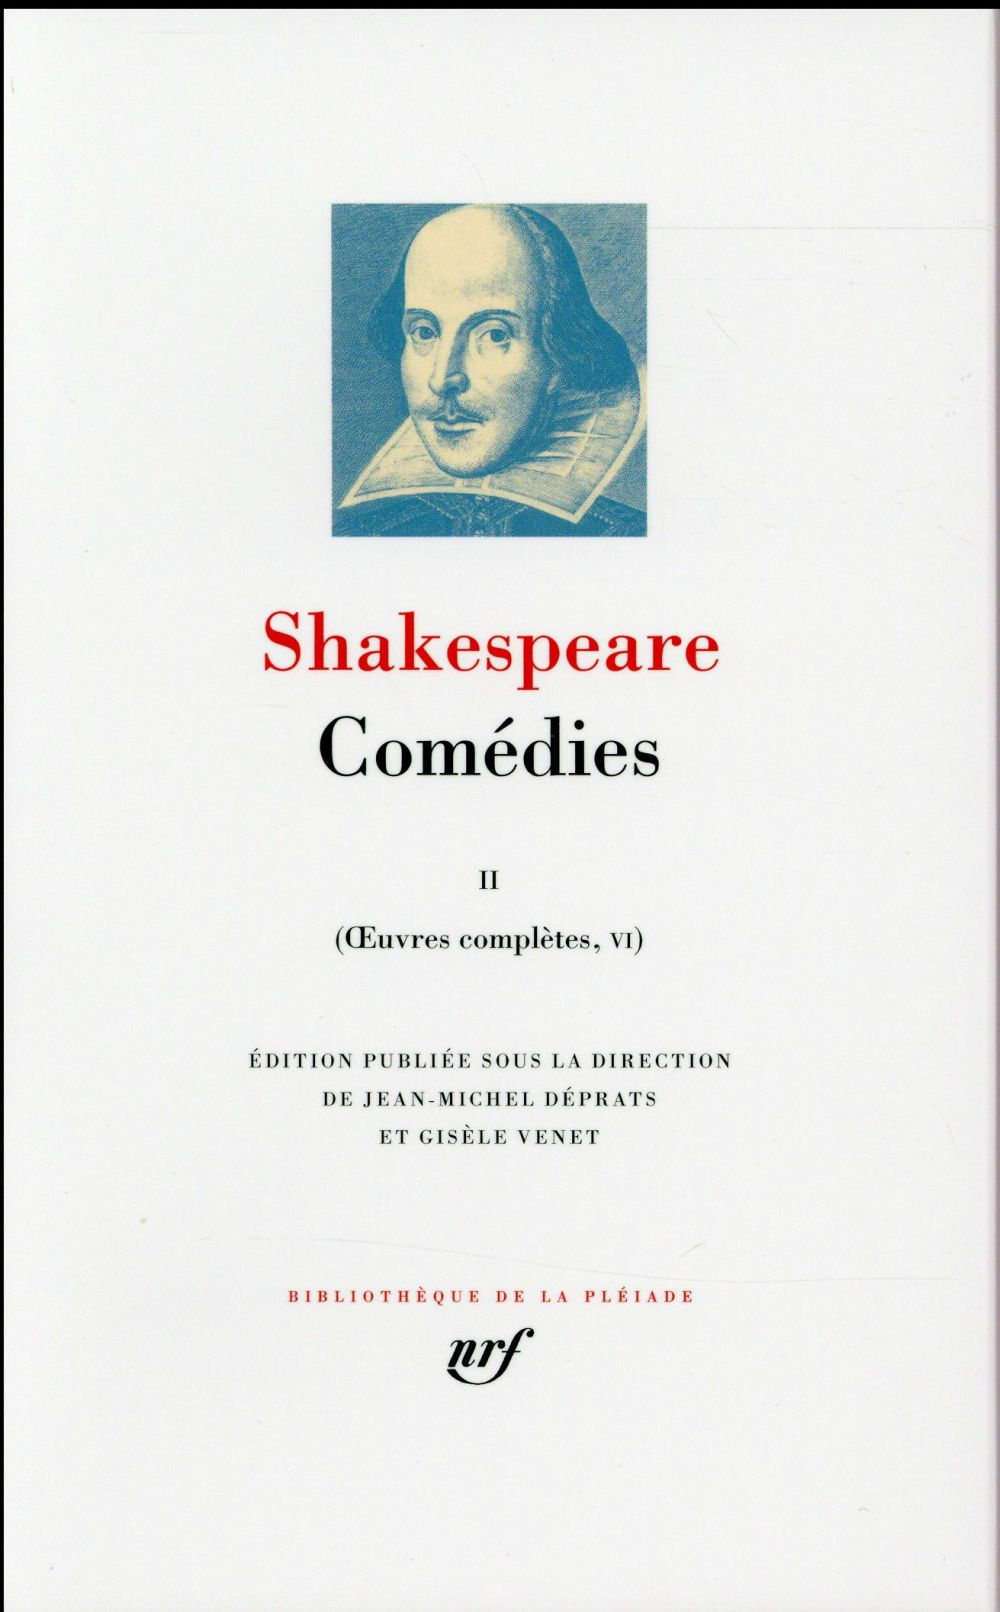 OEUVRES COMPLETES, V-VII : COMEDIES (TOME 2)